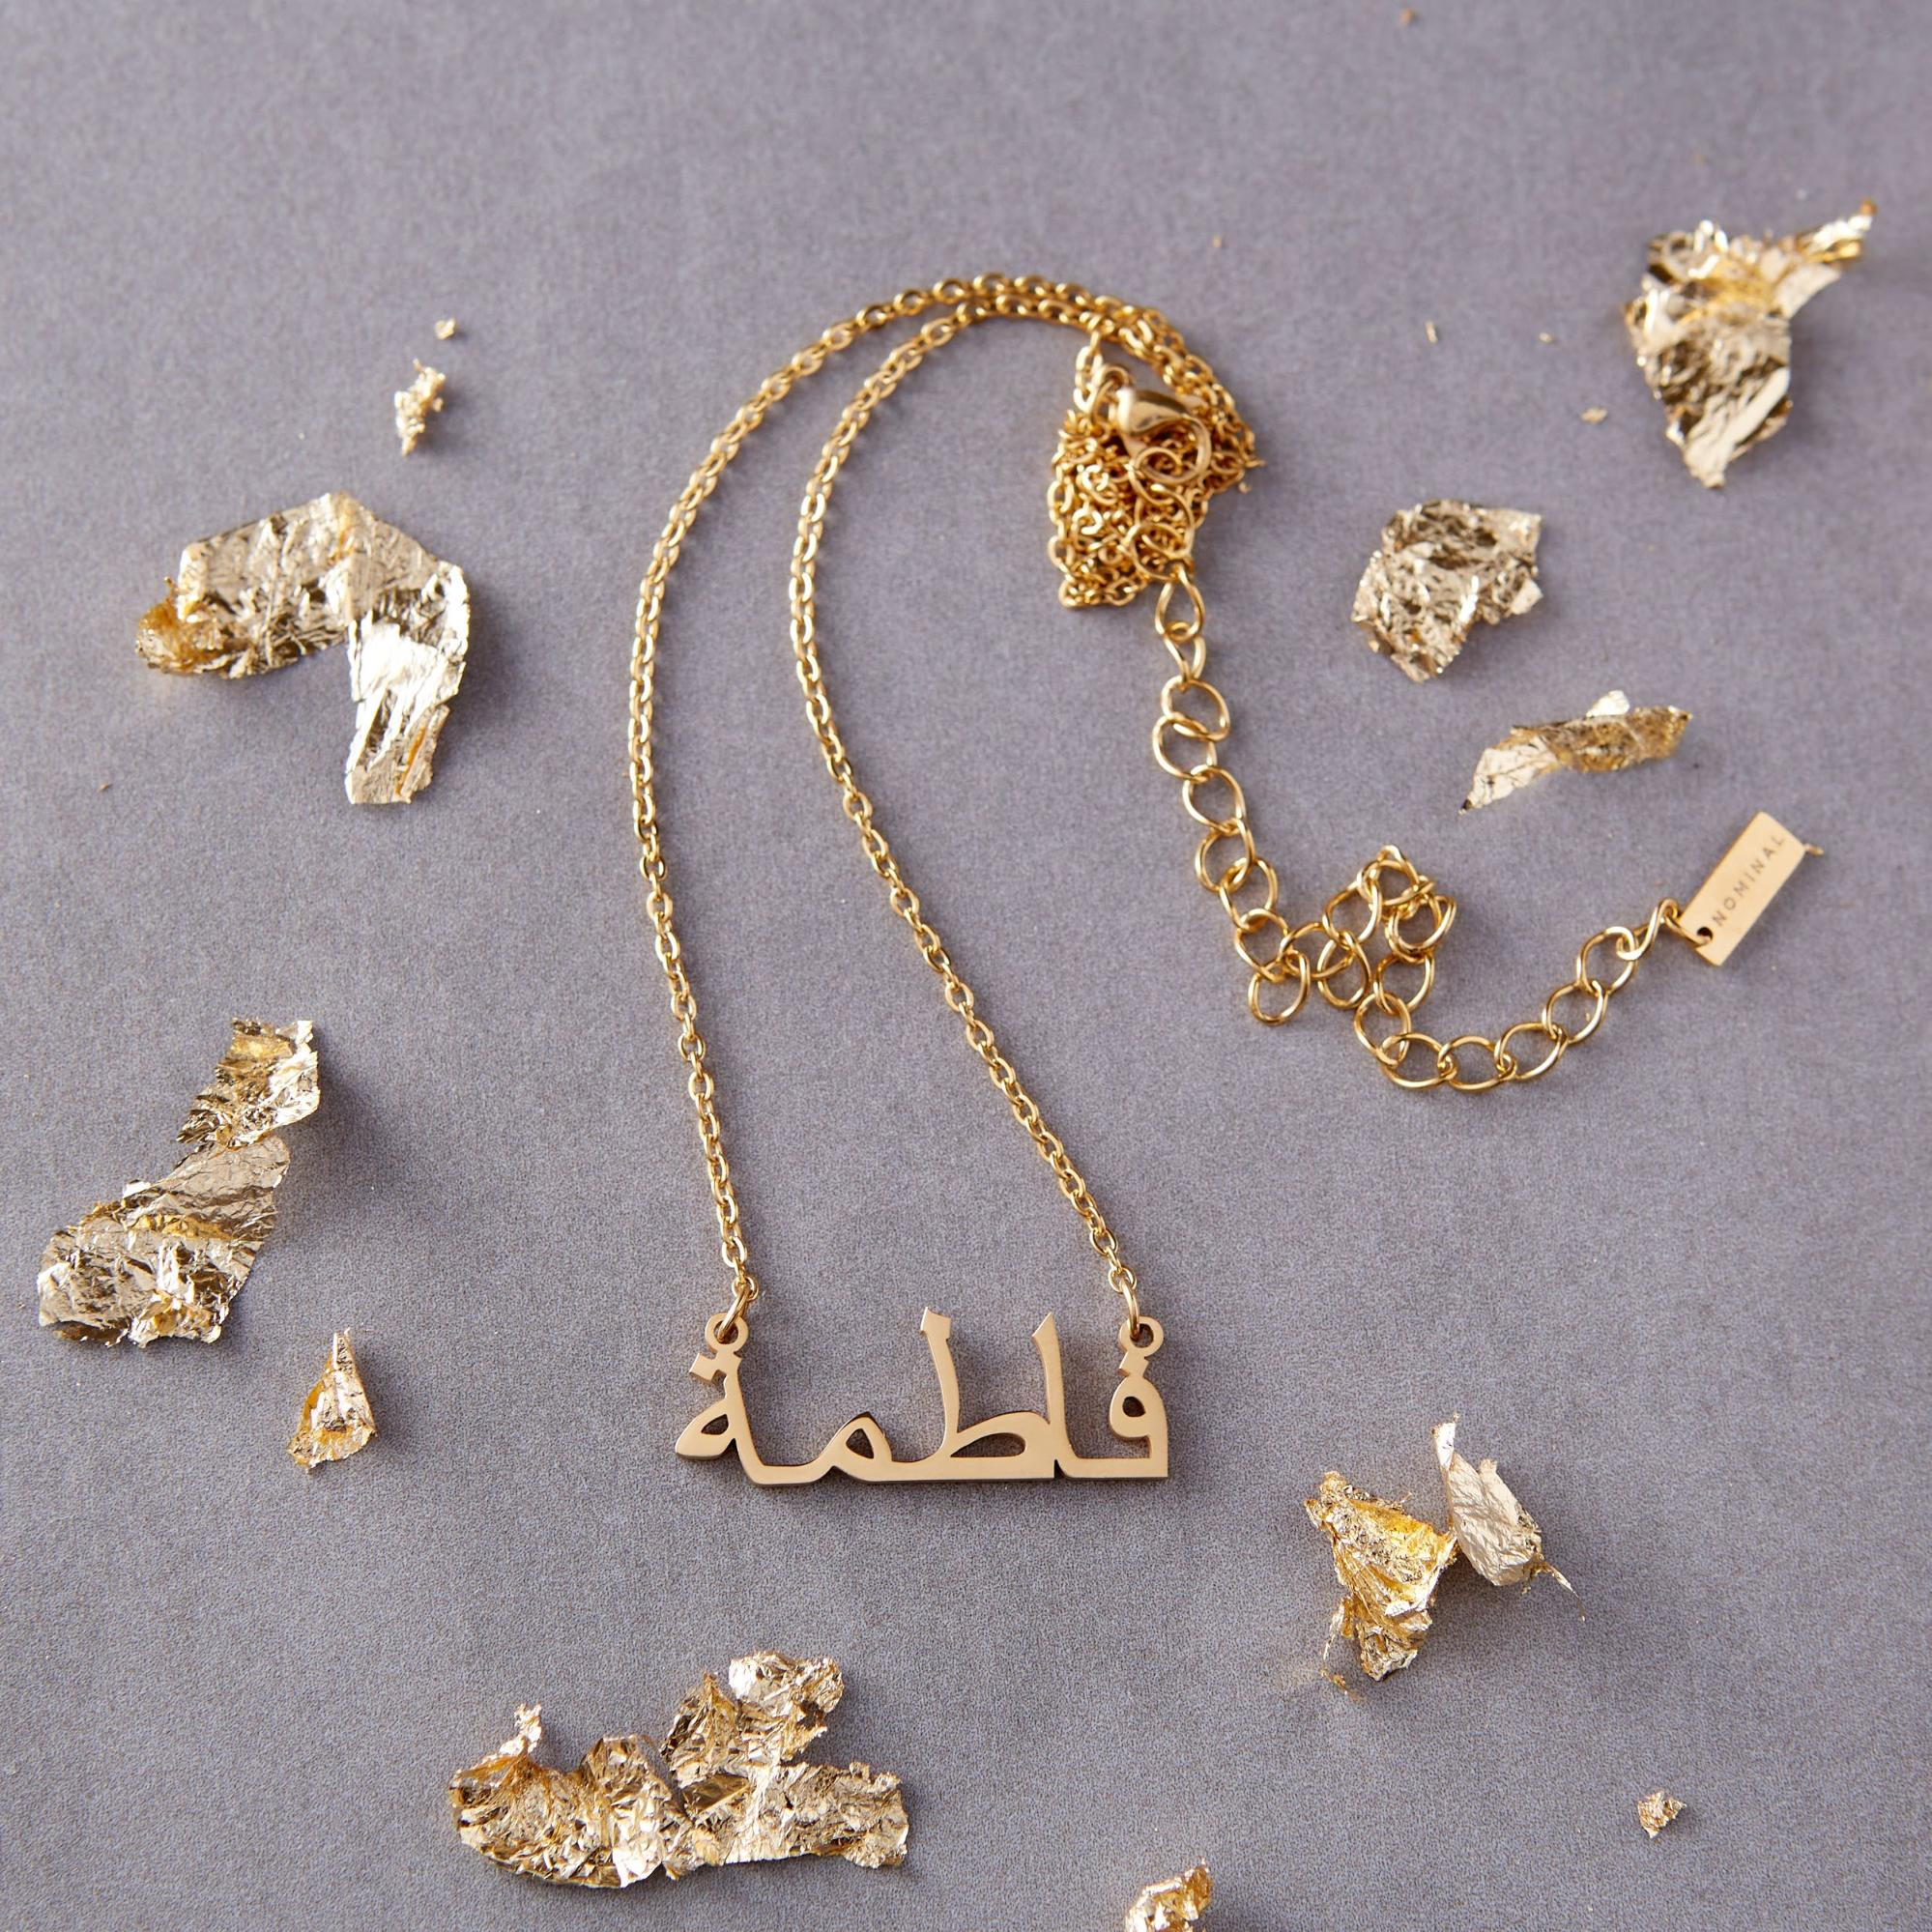 An array of golf foil pieces along with a necklace from Nominal.